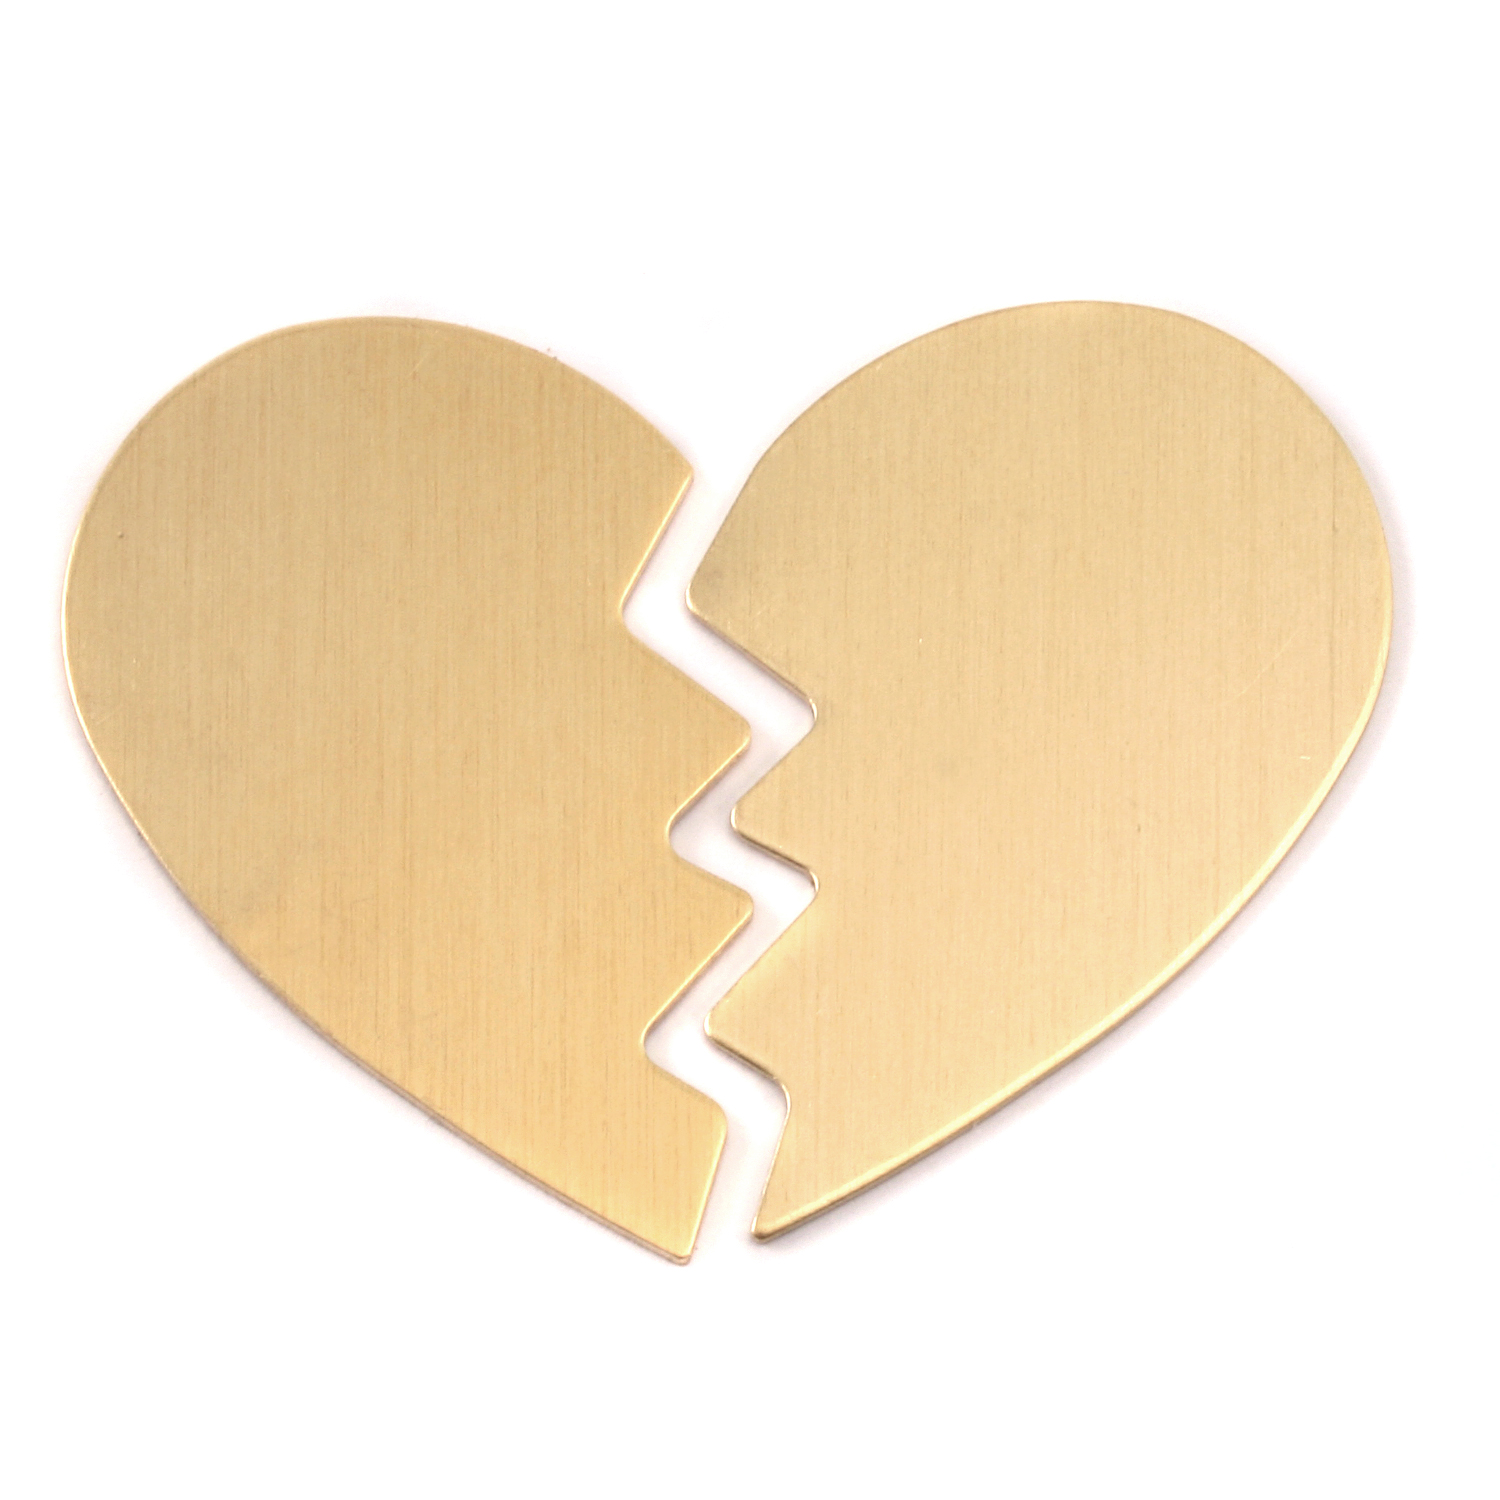 Brass Large Broken Heart, 2 pieces, 24g